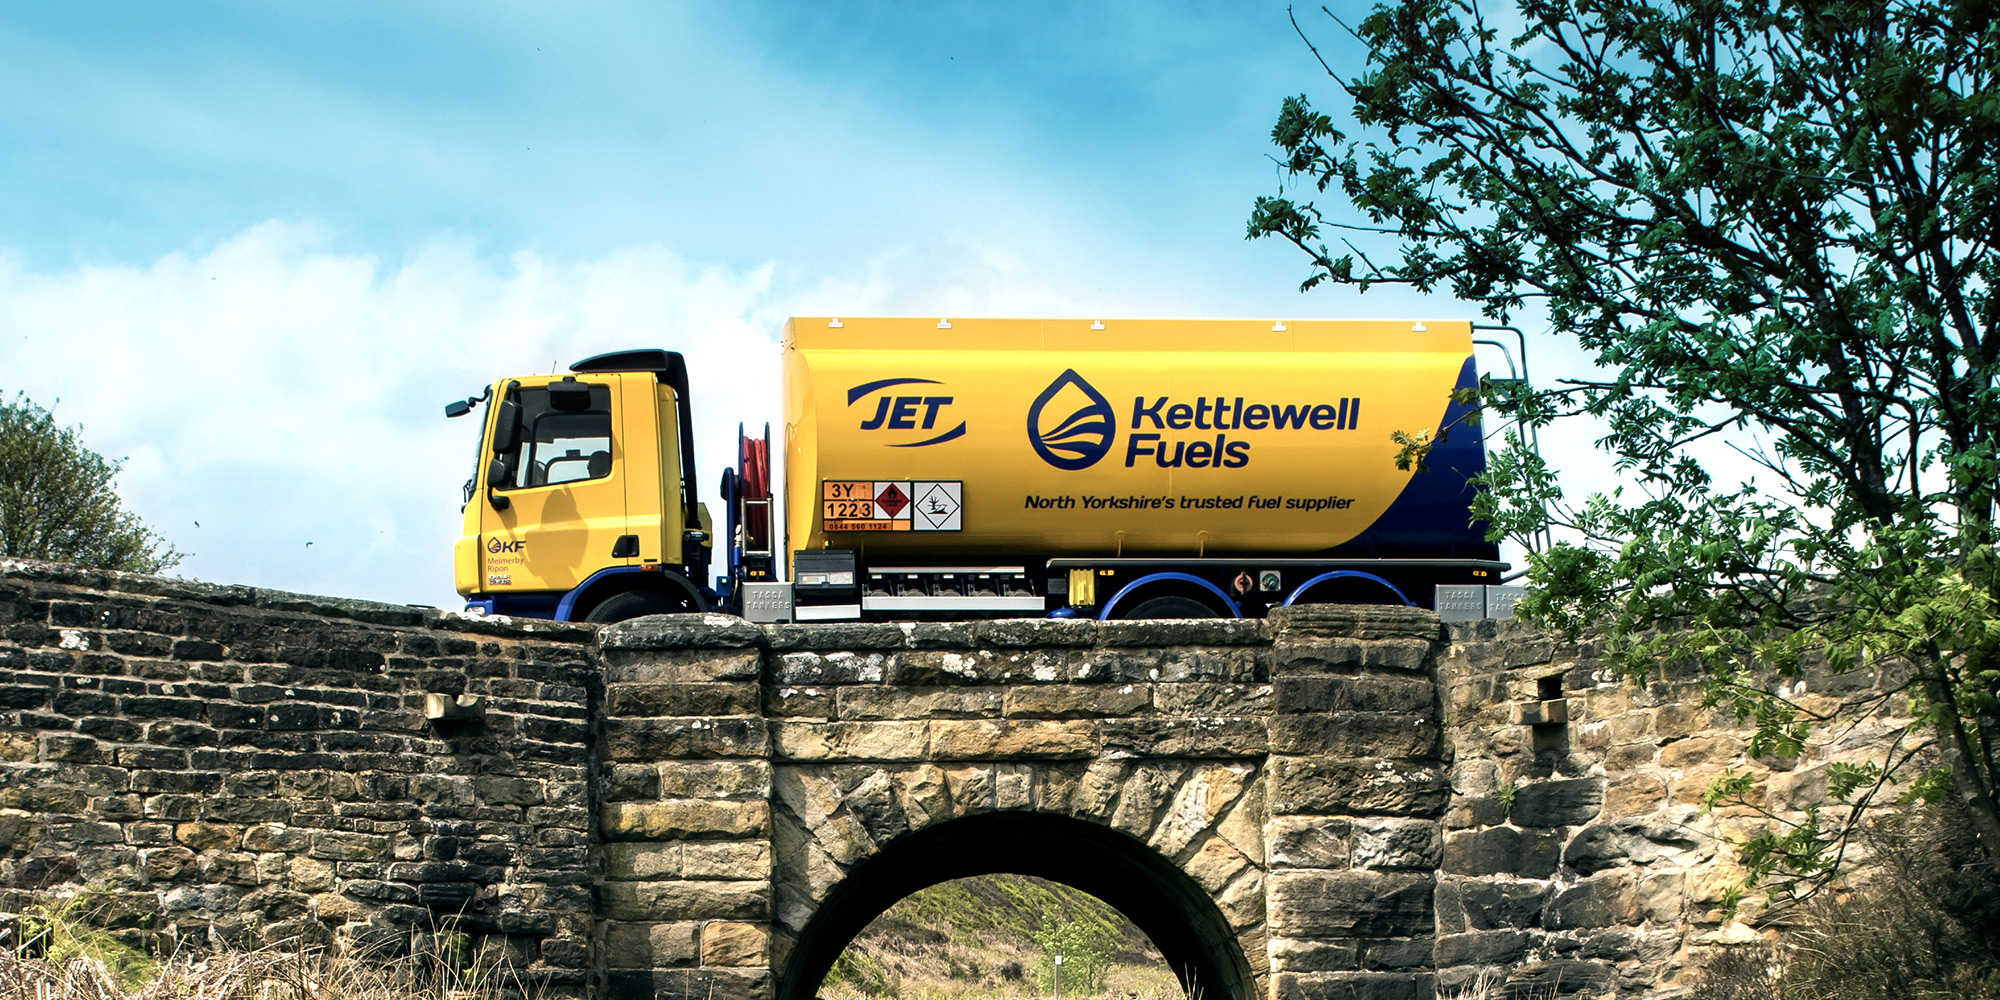 Kettlewell Fuels Truck